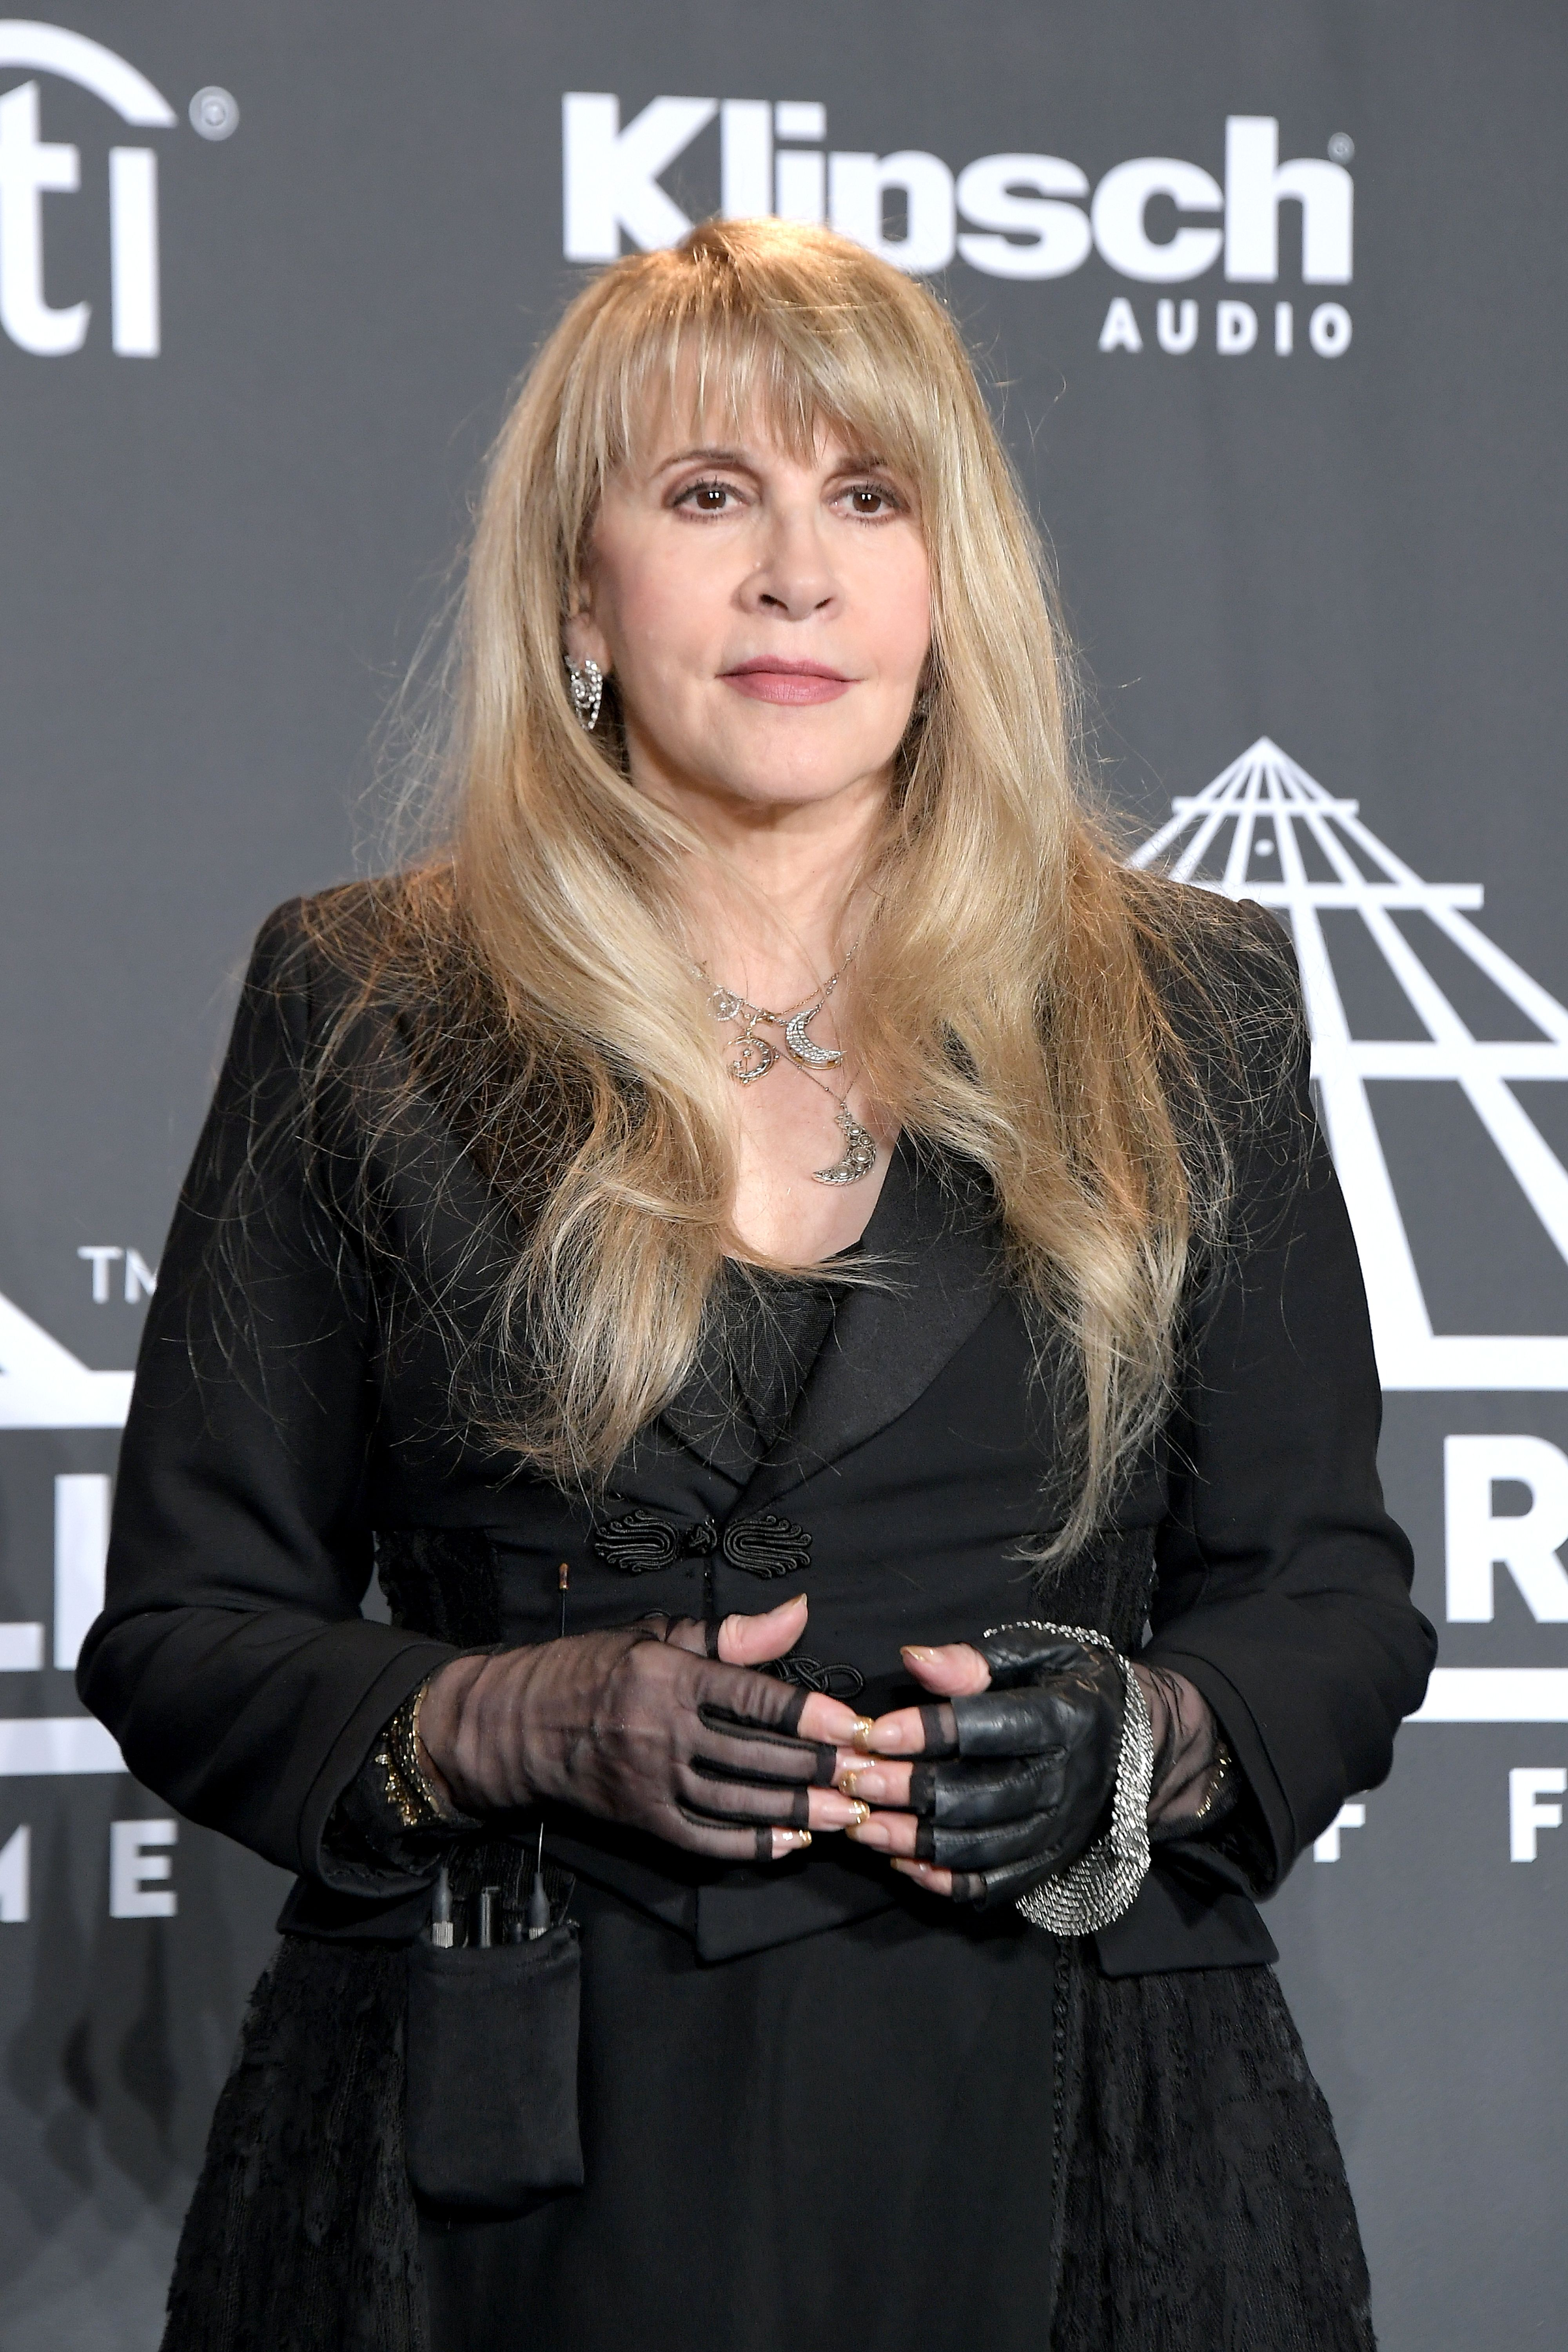 Stevie Nicks at the 2019 Rock & Roll Hall Of Fame Induction Ceremony in New York City | Source: Getty Images